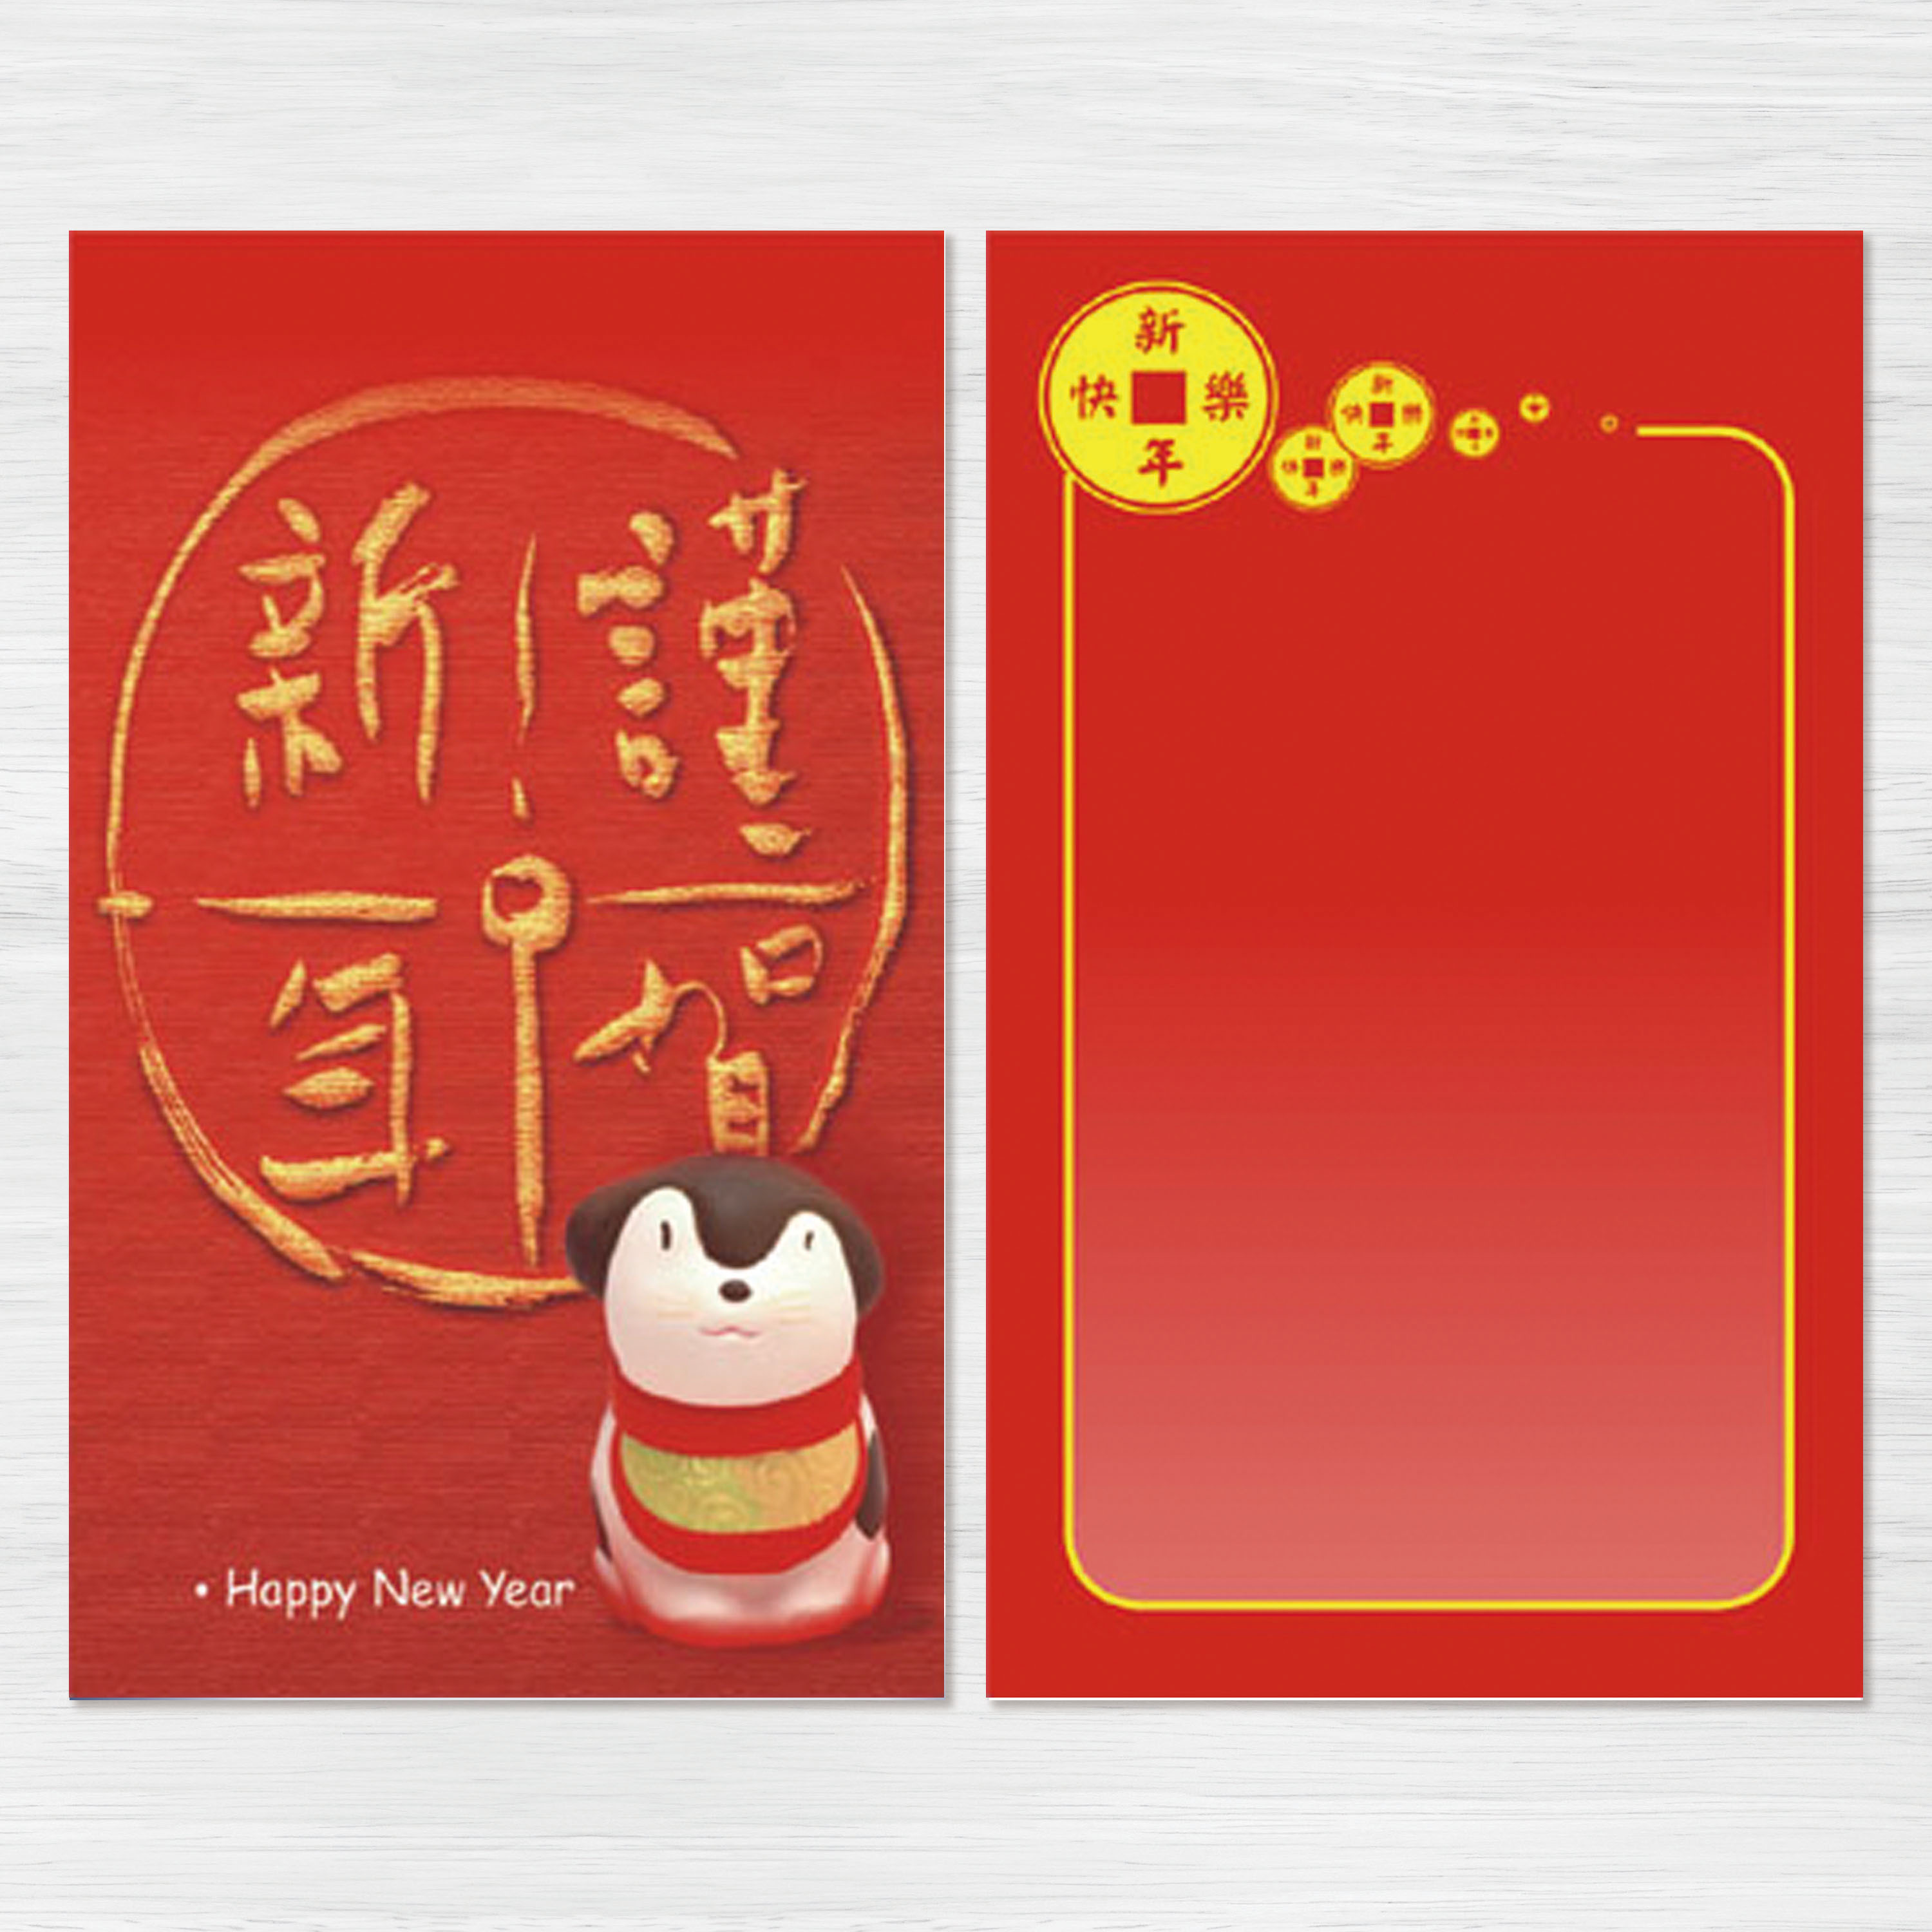 新年咭樣本選購, 新年咭sample, 新年咭樣本, newyear card sample, newyear card Template, 免費模板, Free Template